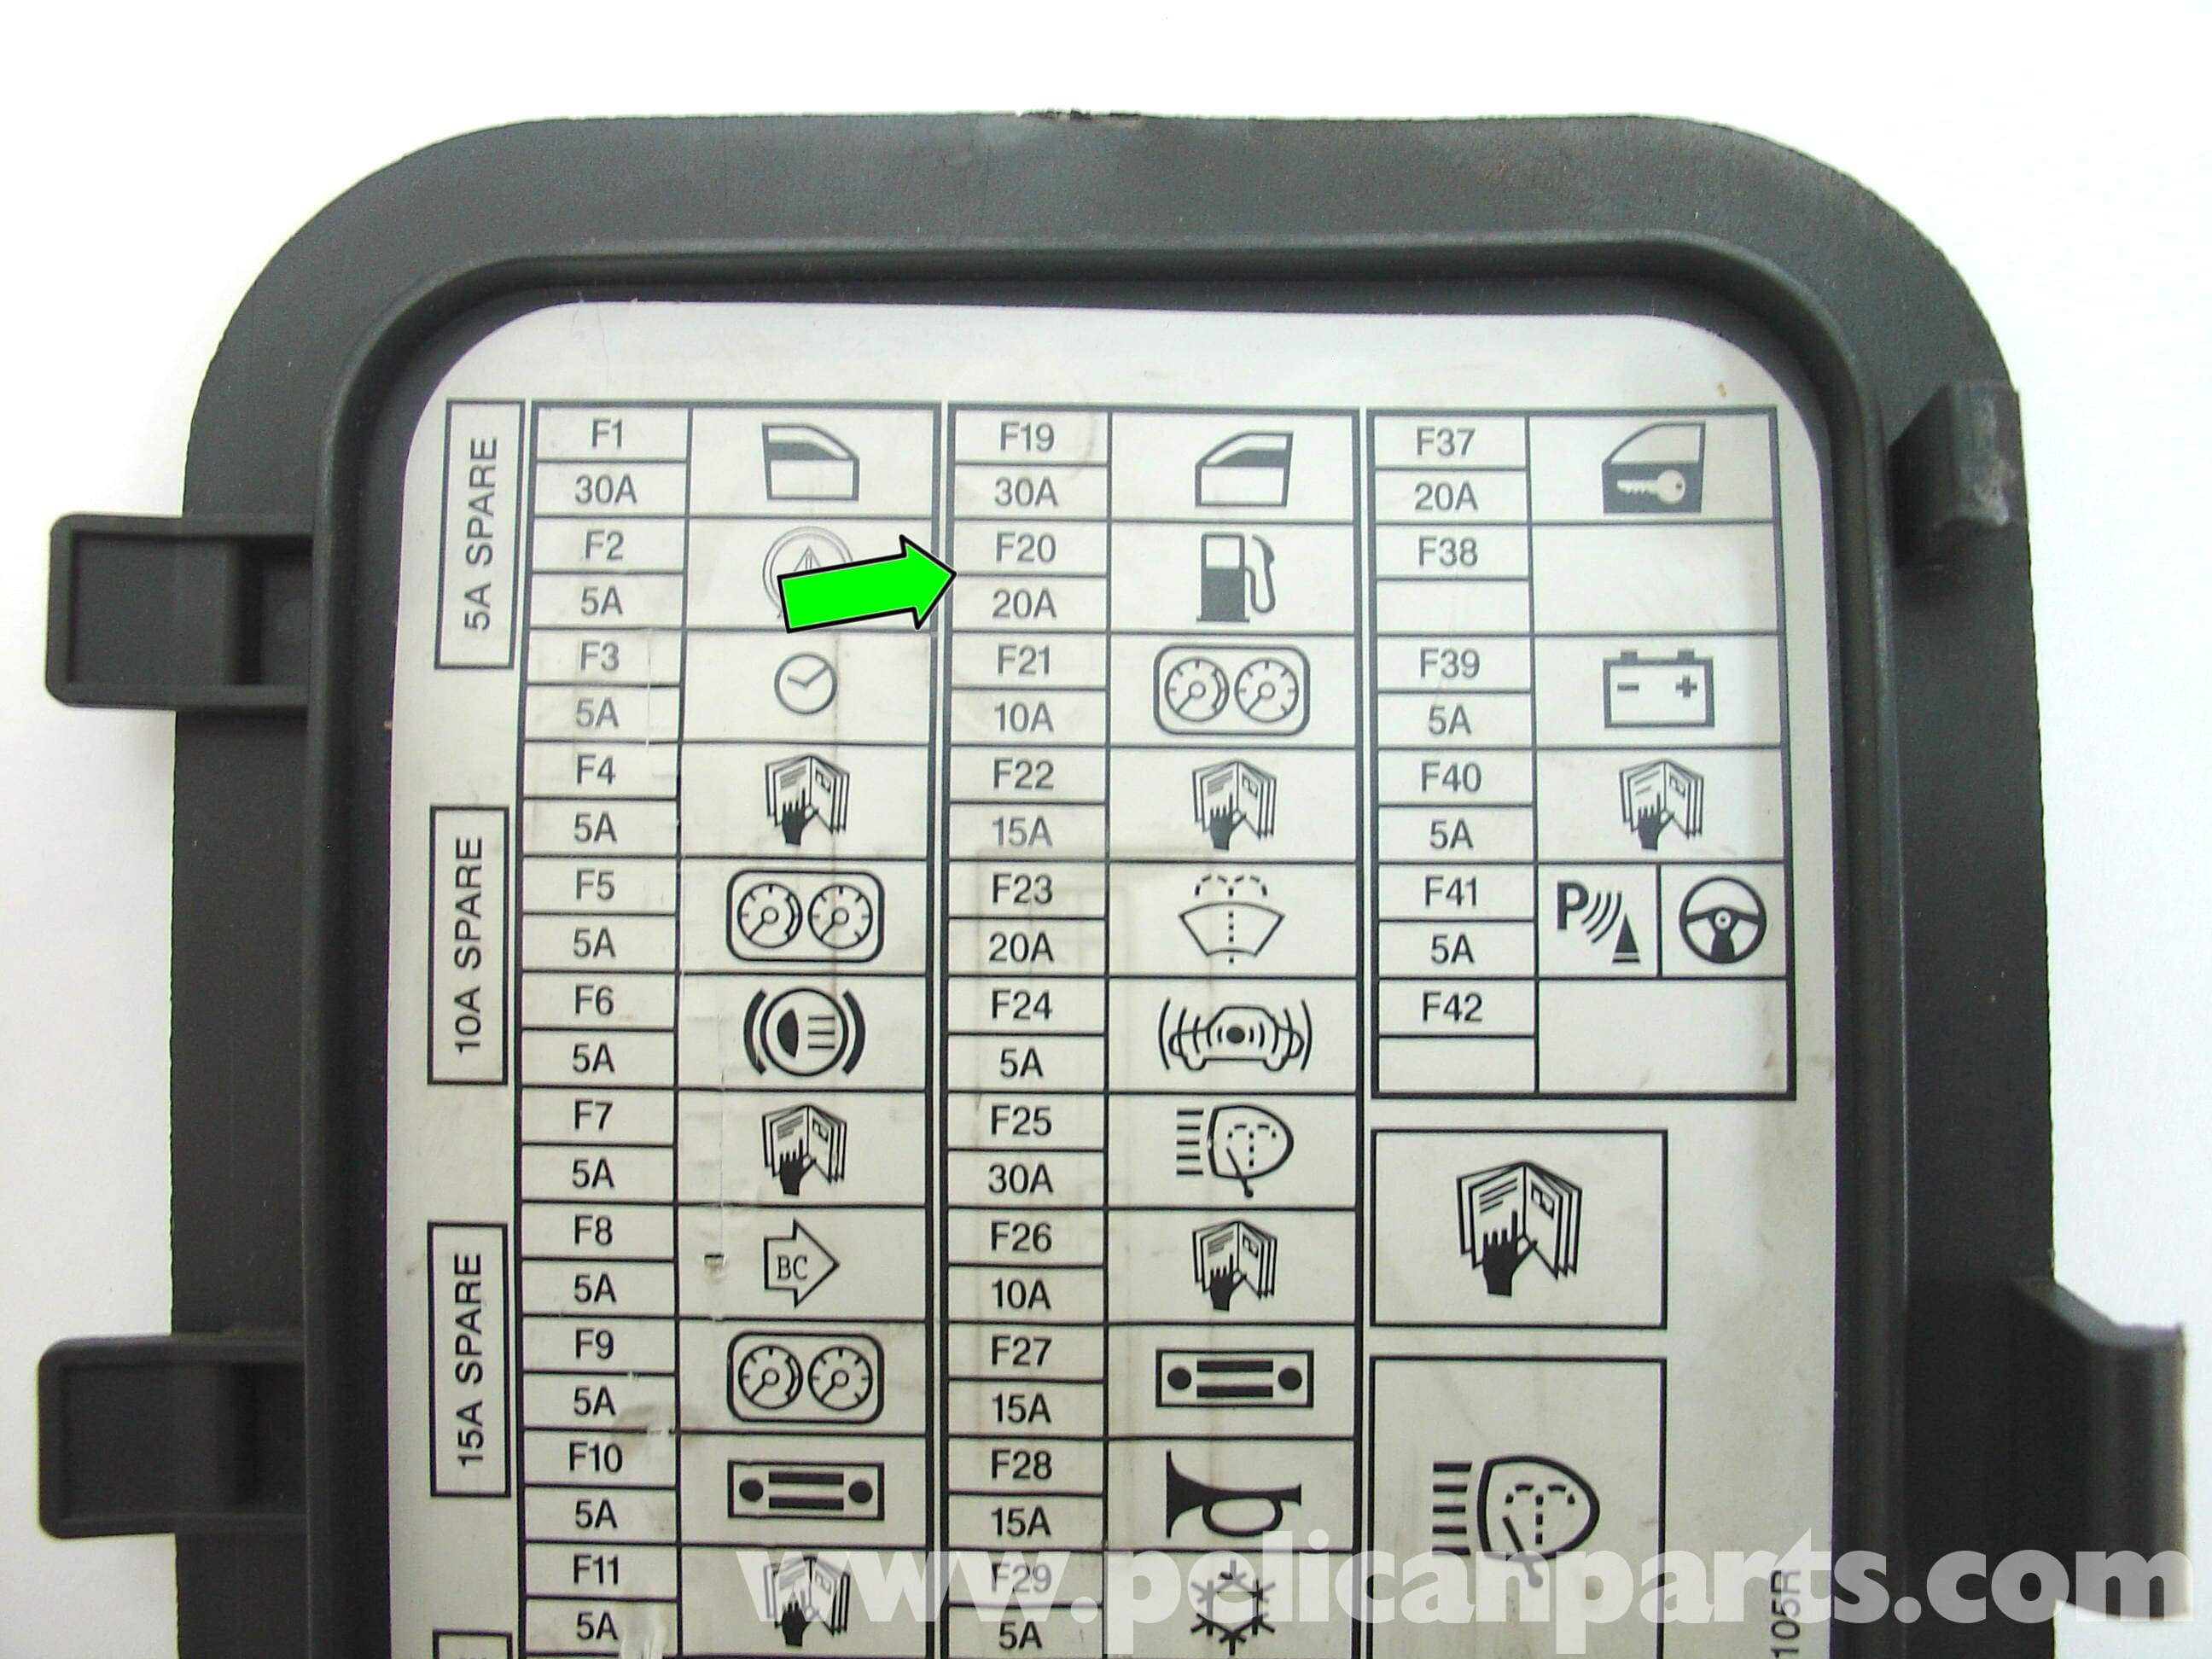 2005 Mini Cooper S Fuse Box Guide And Troubleshooting Of Wiring Alarm Diagram 2007 Schematics Rh Ksefanzone Com